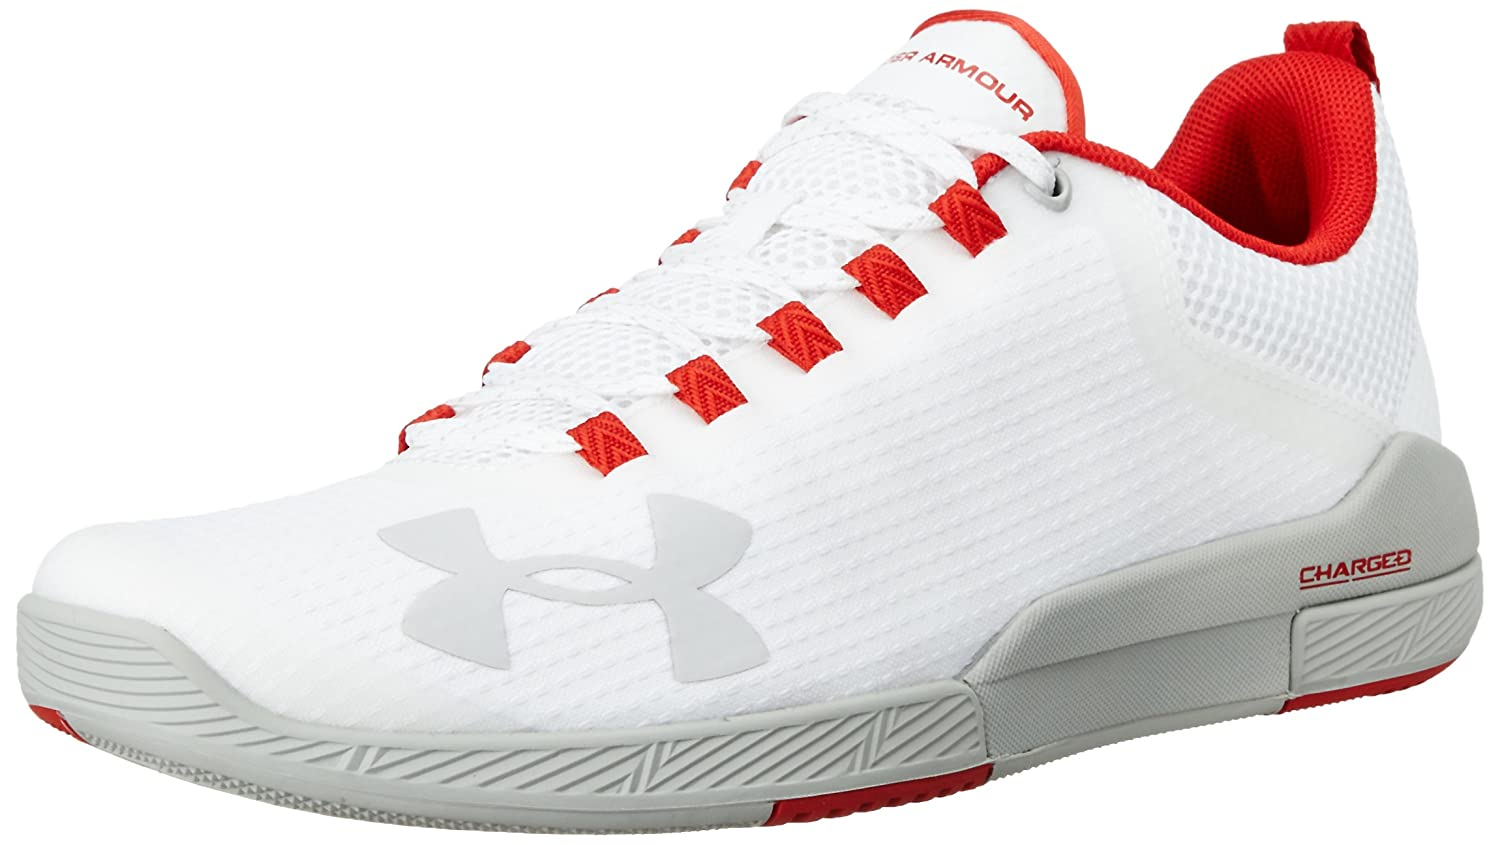 Under Armour Men's Charged Legend Cross-Trainer Shoe B01GU930RO 7 D(M) US|White/Aluminum/Aluminum